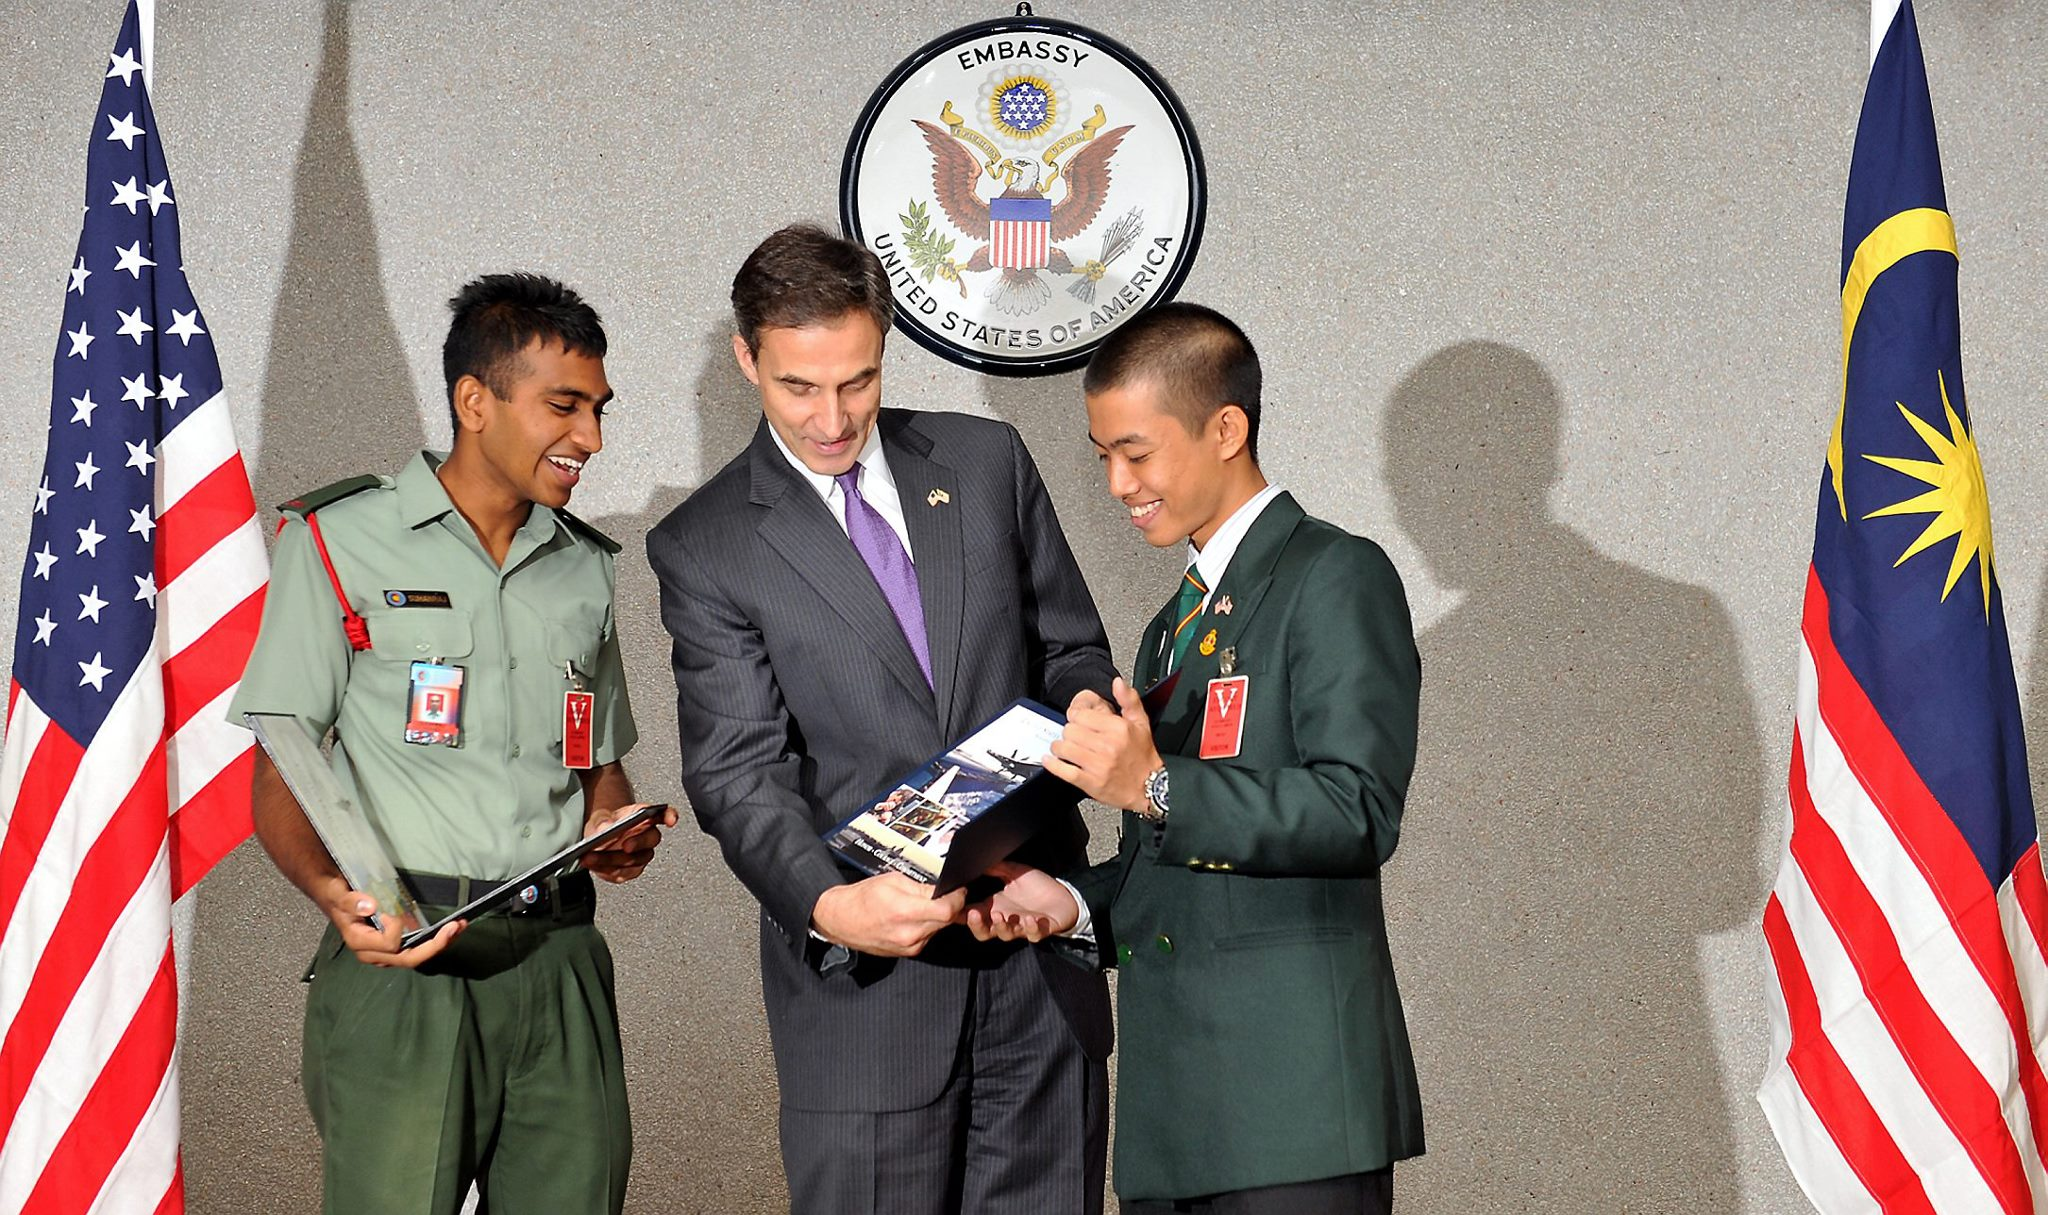 The then US Ambassador to Malaysia Paul W. Jones presented to Suhanraj Rajasegaran (left) and Chan Jun Kwan (right) the scholarship to attend the United States Services Academy in 2012.